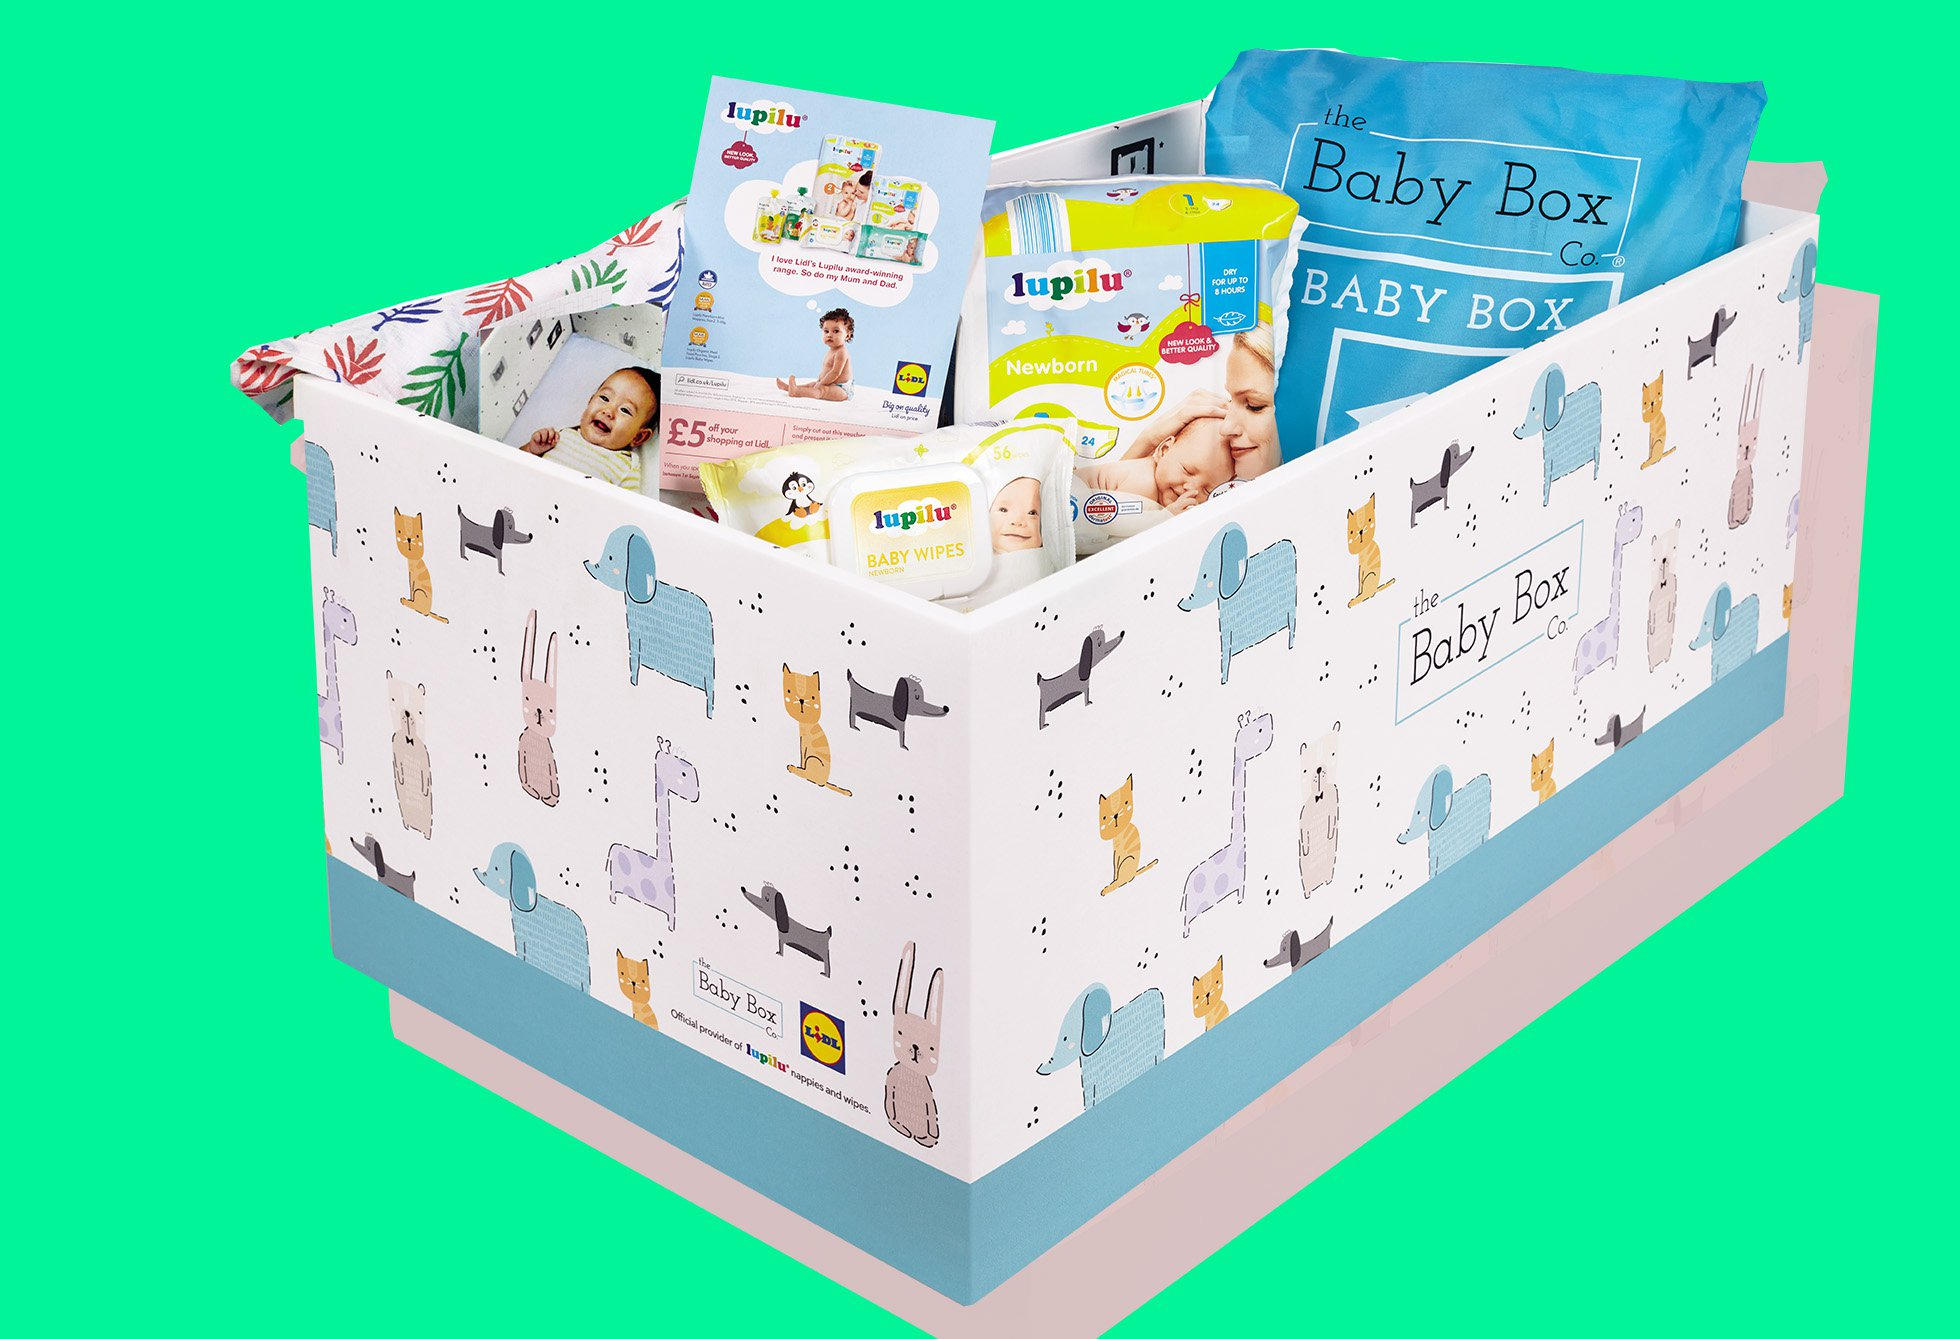 Lidl are giving away free baby boxes for new parents